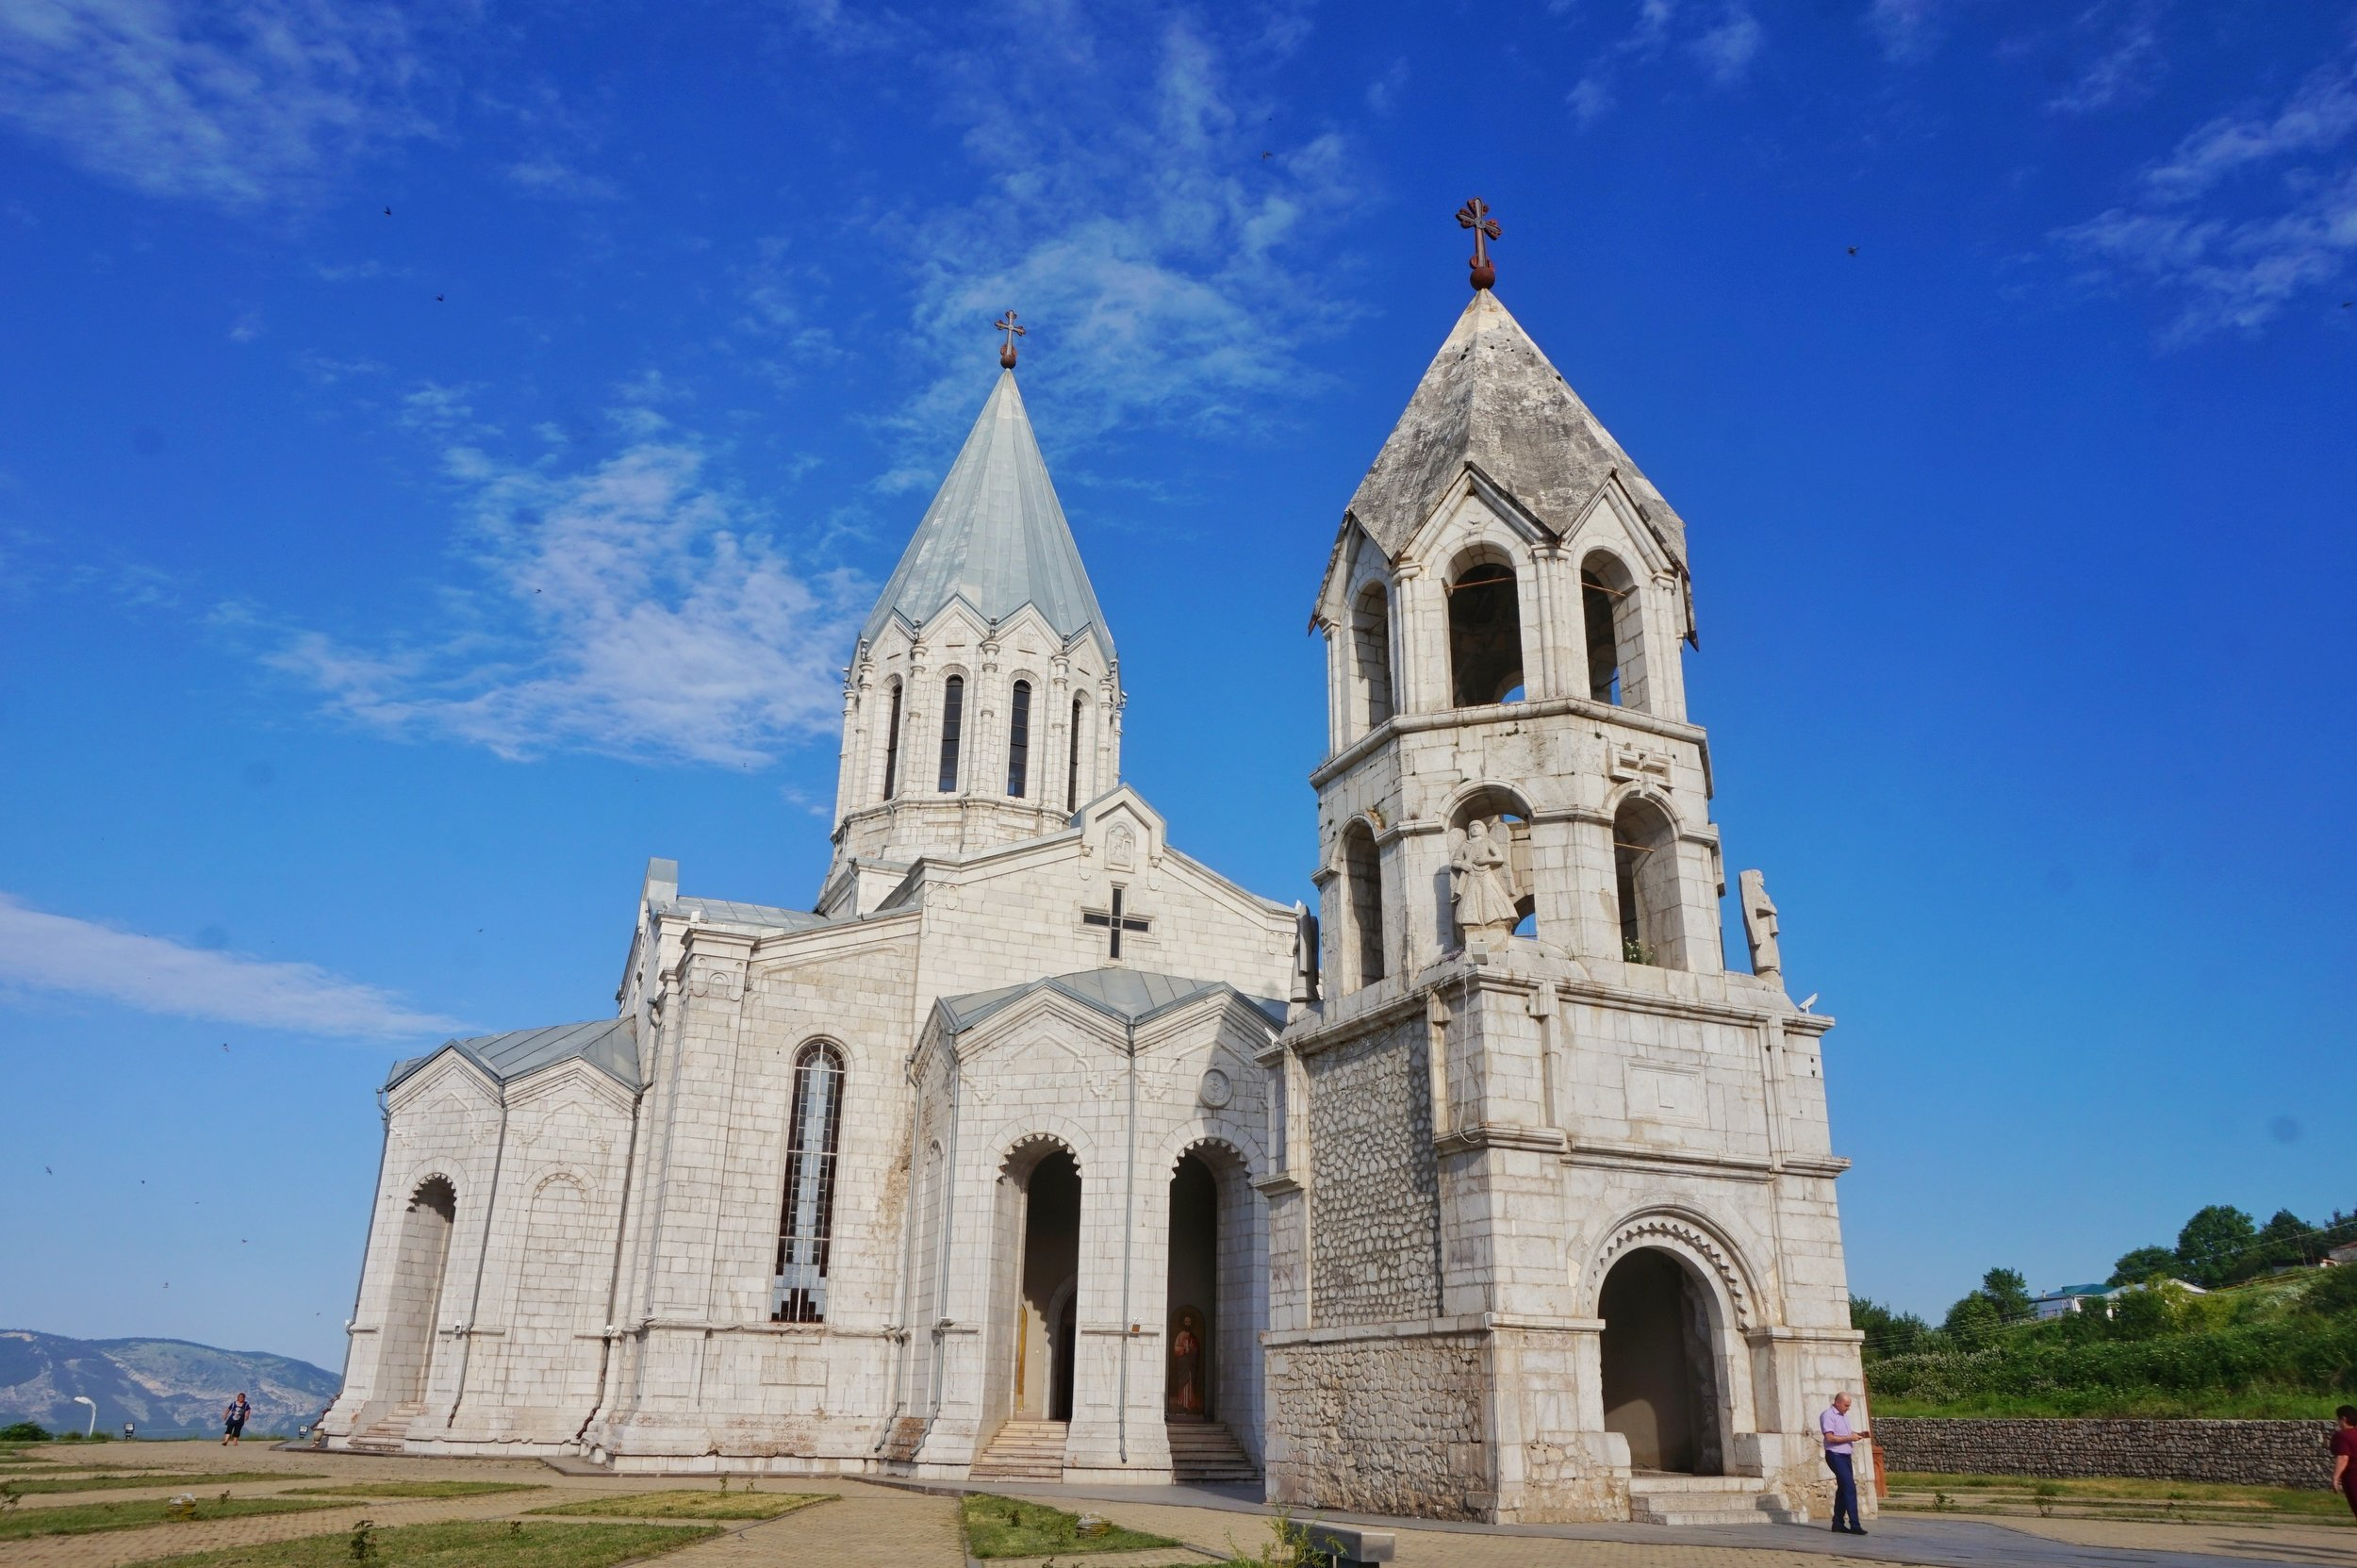 The Cathedral in Shushi is one of the best things to see in Armenia! You should definitely include it in your Armenia travel itinerary.